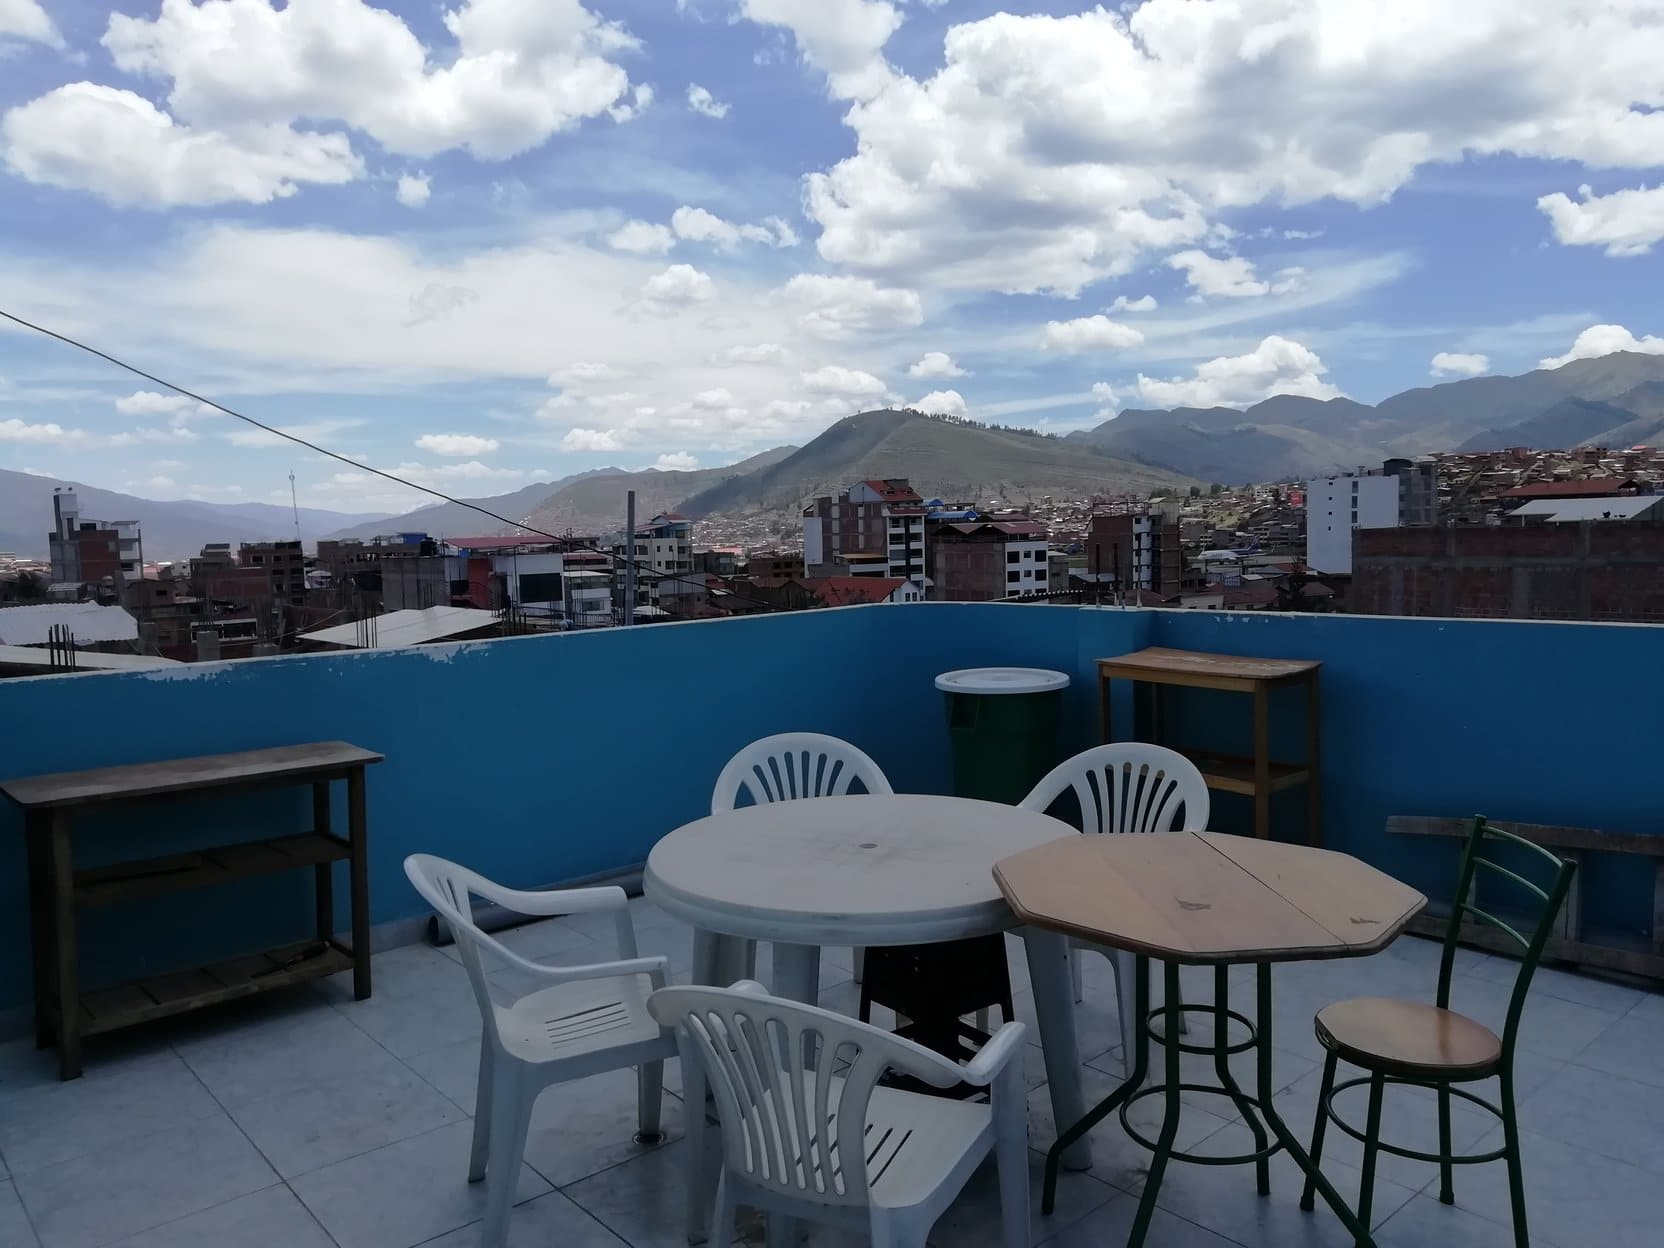 Cusco Volunteer house roof terrace